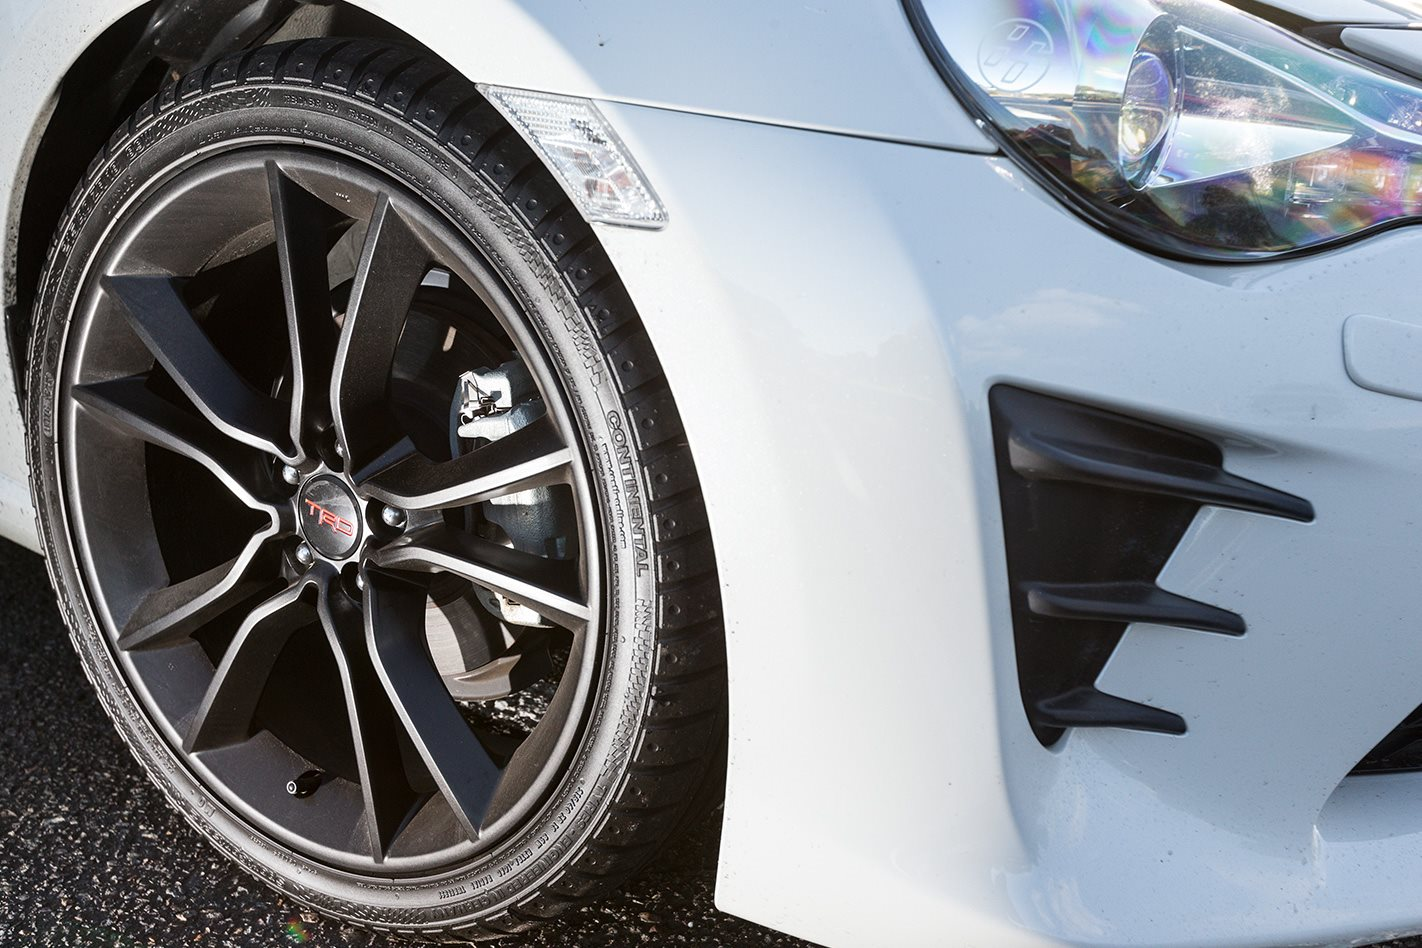 2017 Toyota 86 TRD wheel